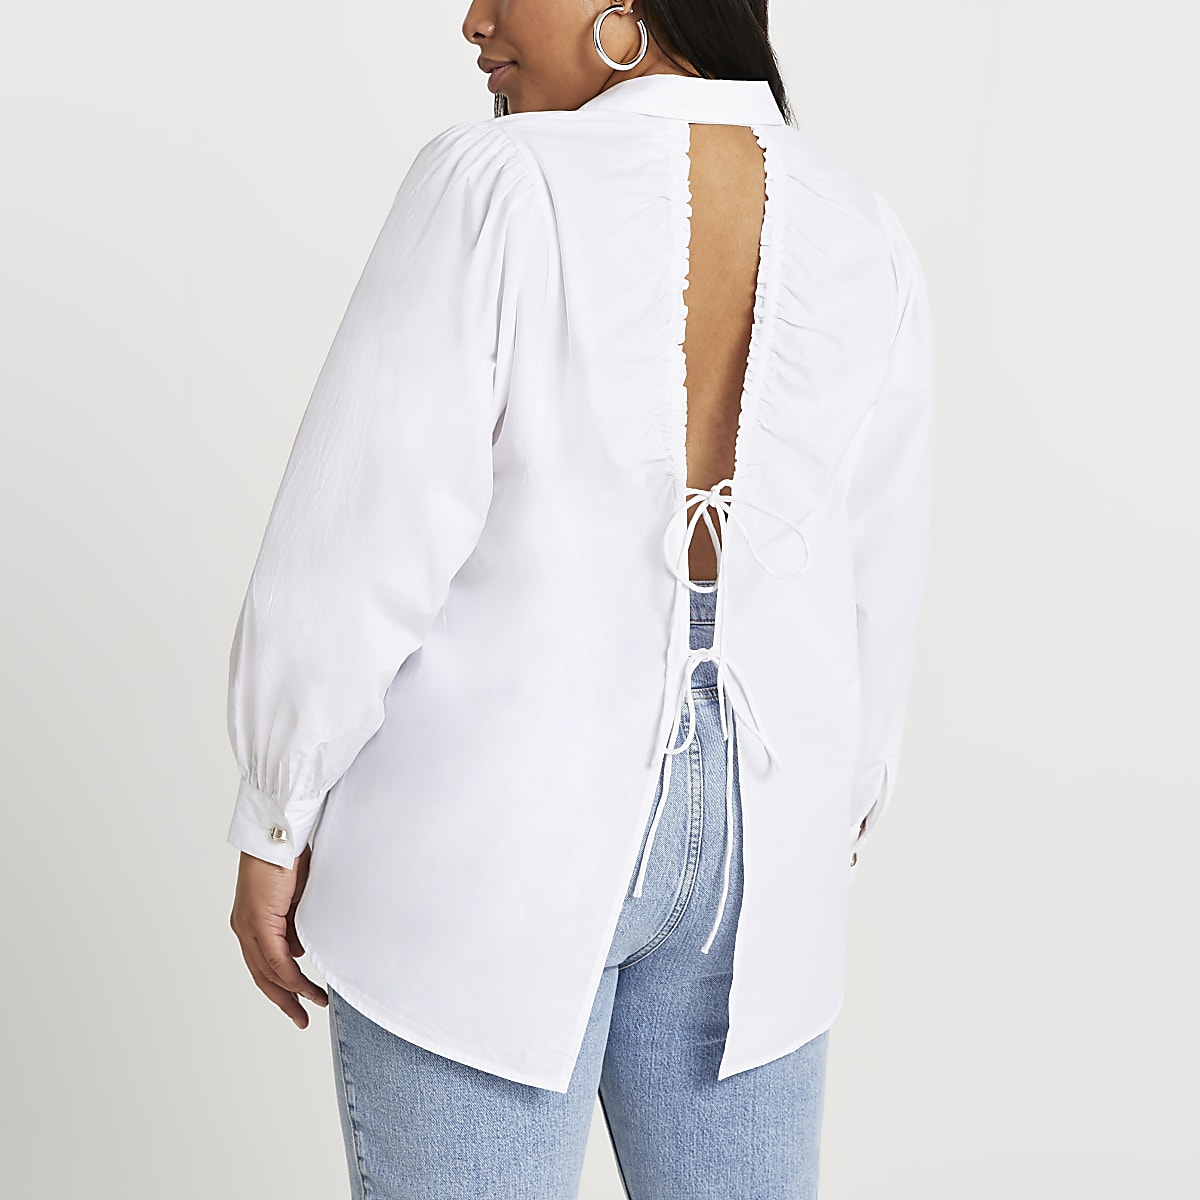 Woman wears white shirt with open back with ties, jeans and silver hoop earring.